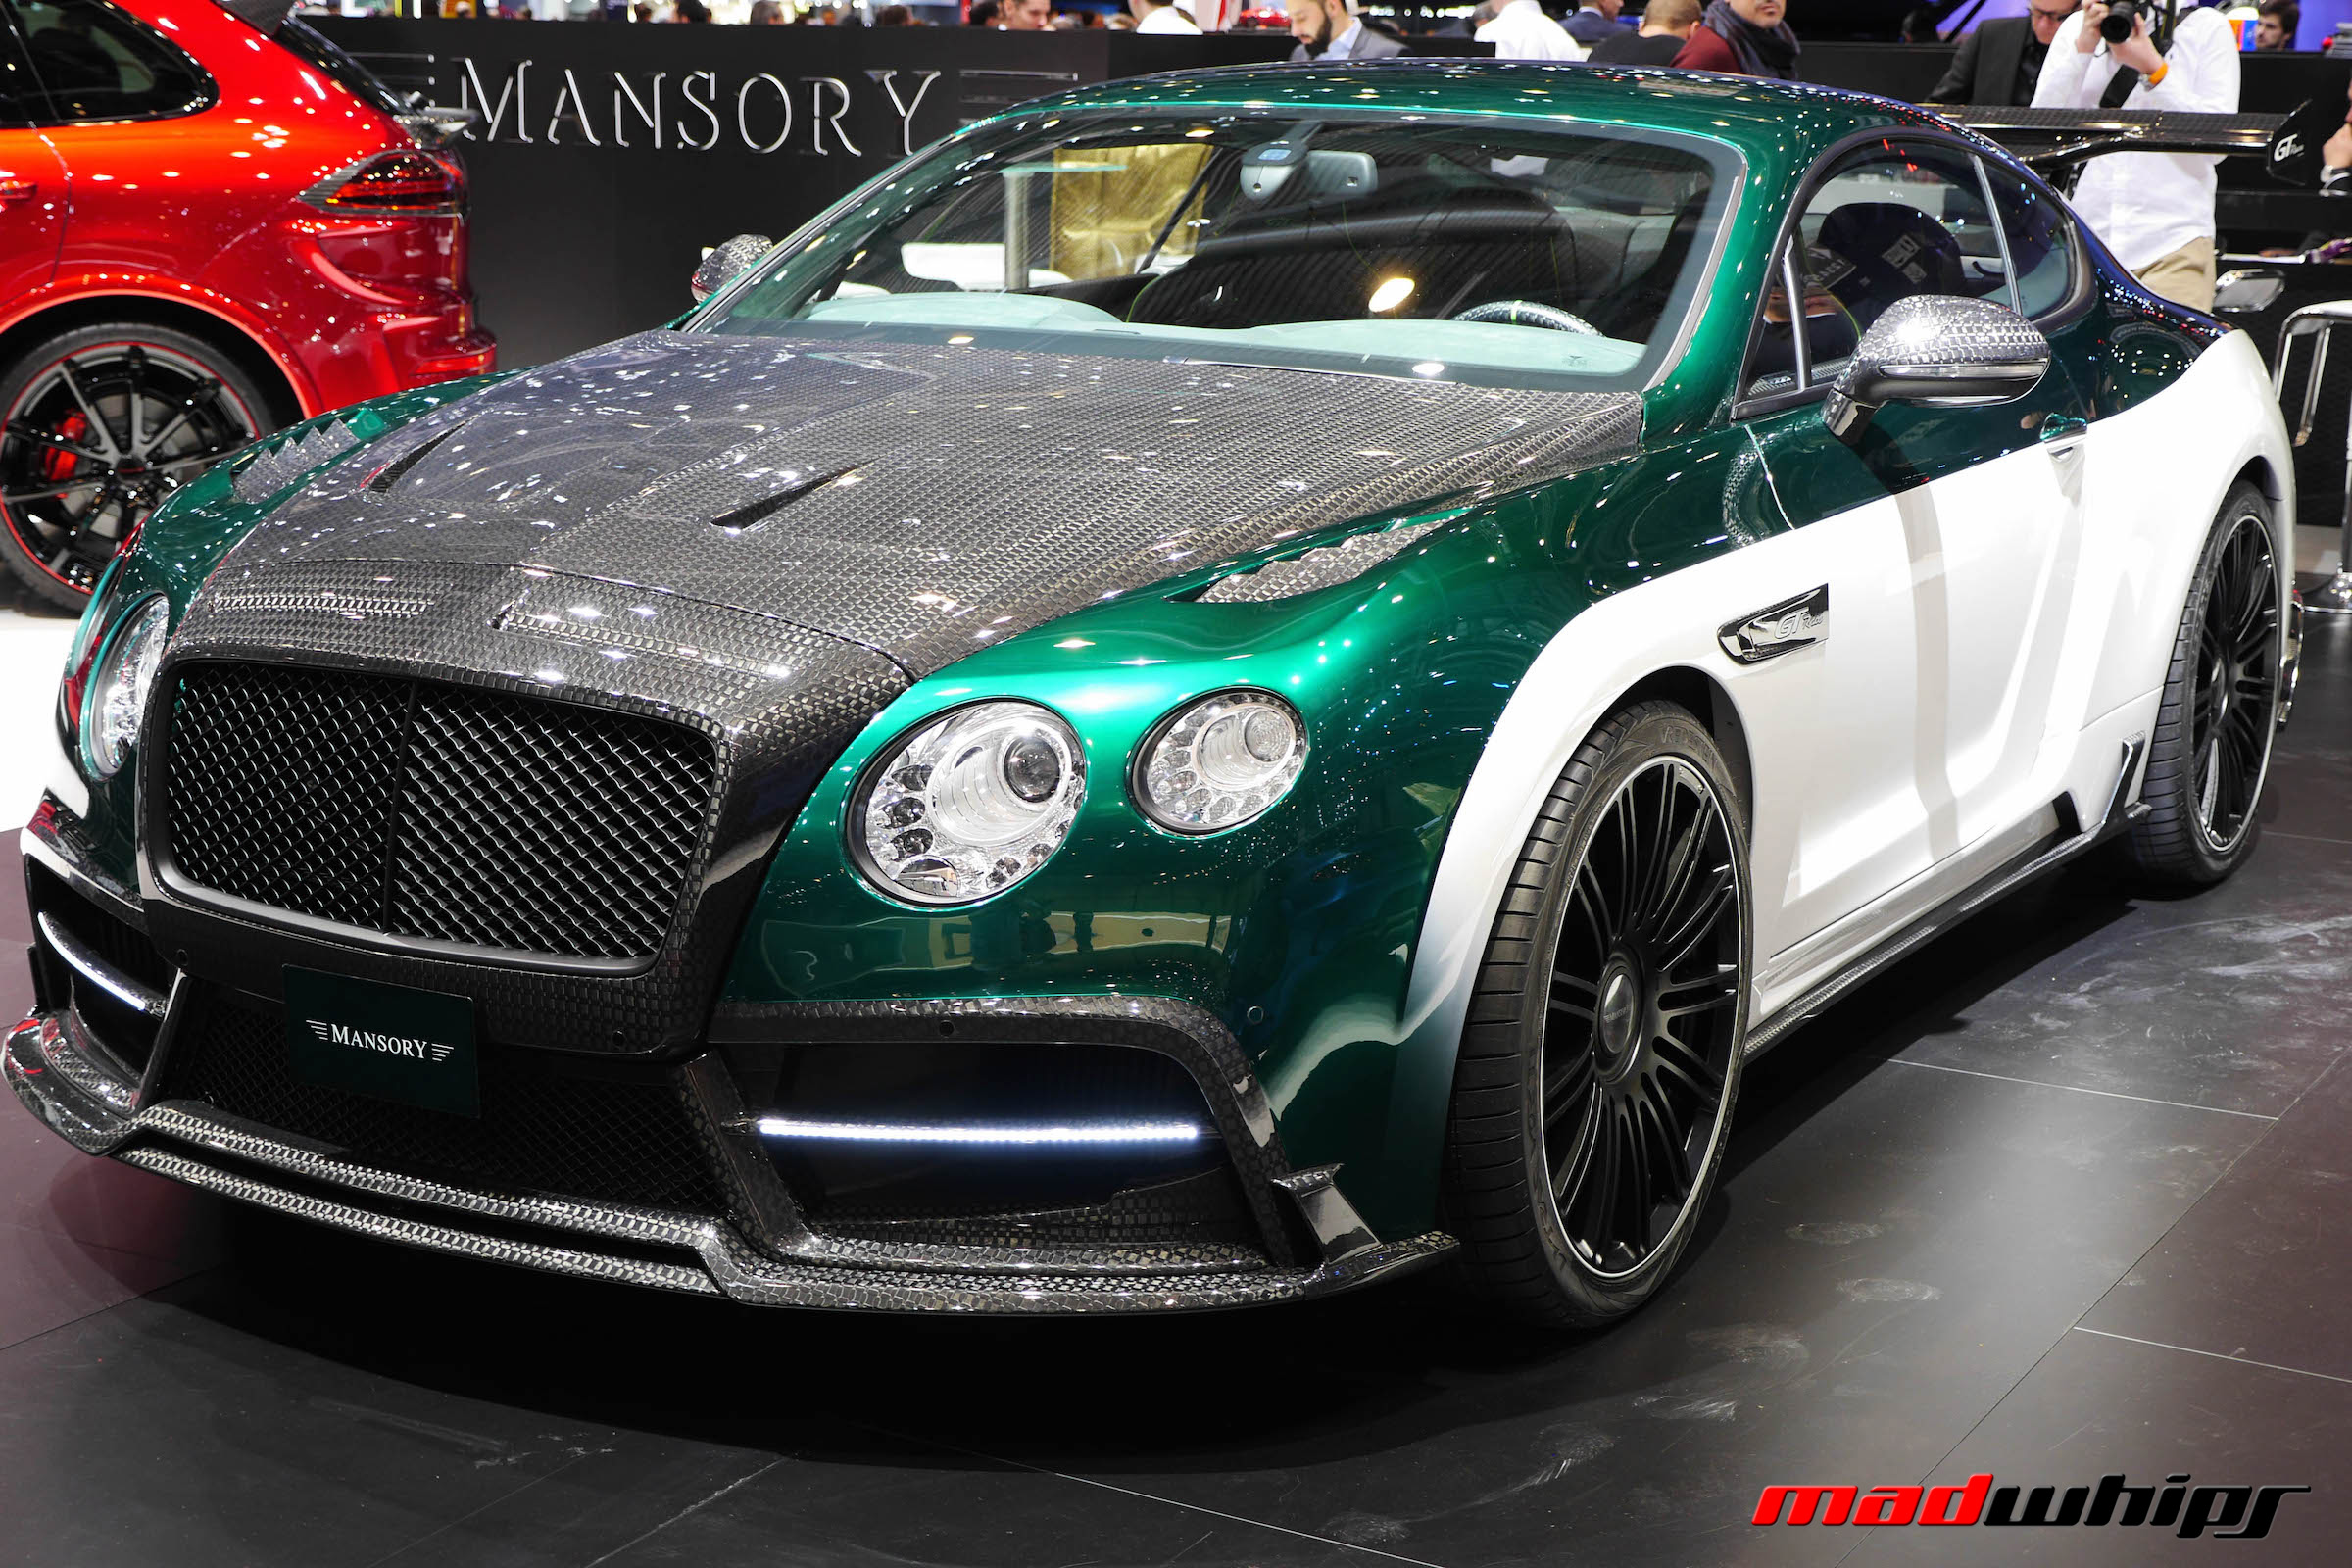 """bentley continental gt mansory madwhips"""" — card from user Саша"""